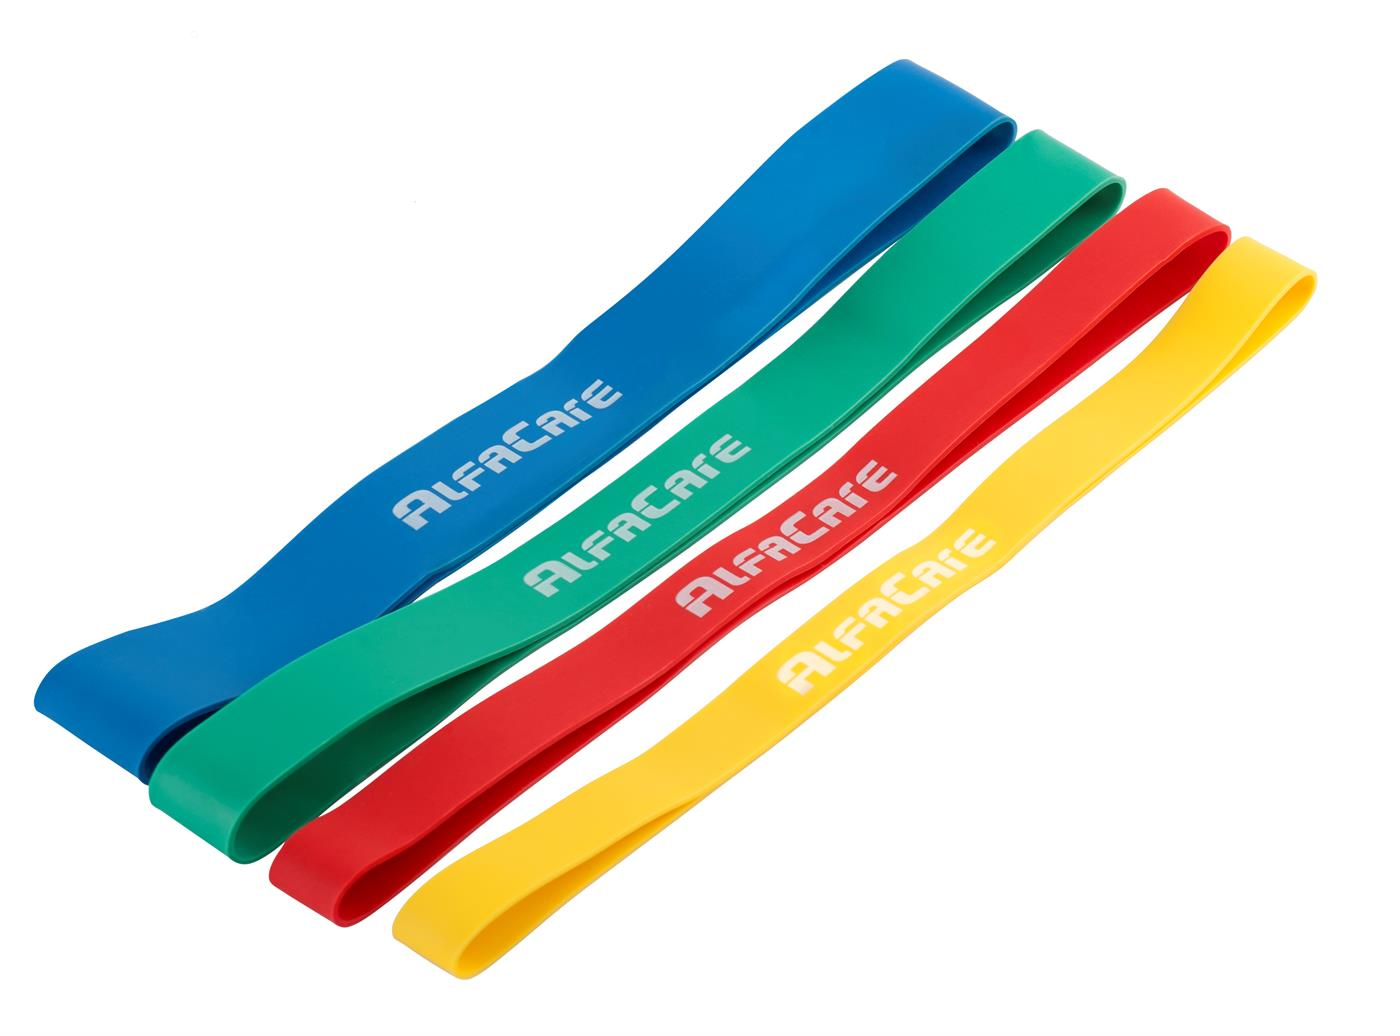 110370 AlfaCare  AlfaCare Rubberband 4-pack X-Lett/Lett/Medium/Hard